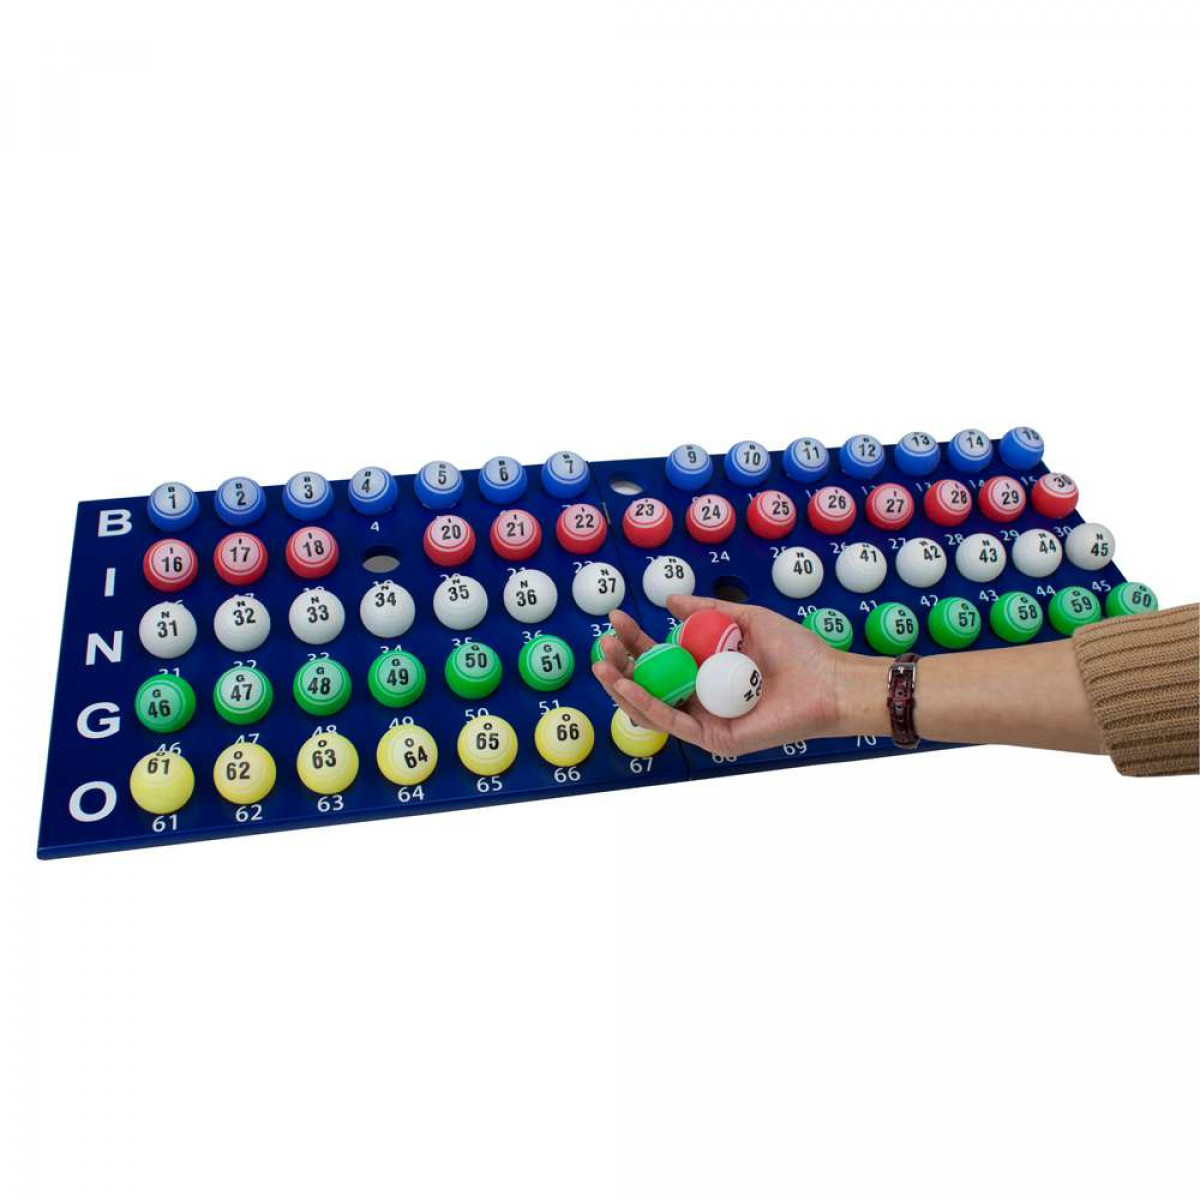 Bingo Equipment Bingo Cage Bingo Game Kit